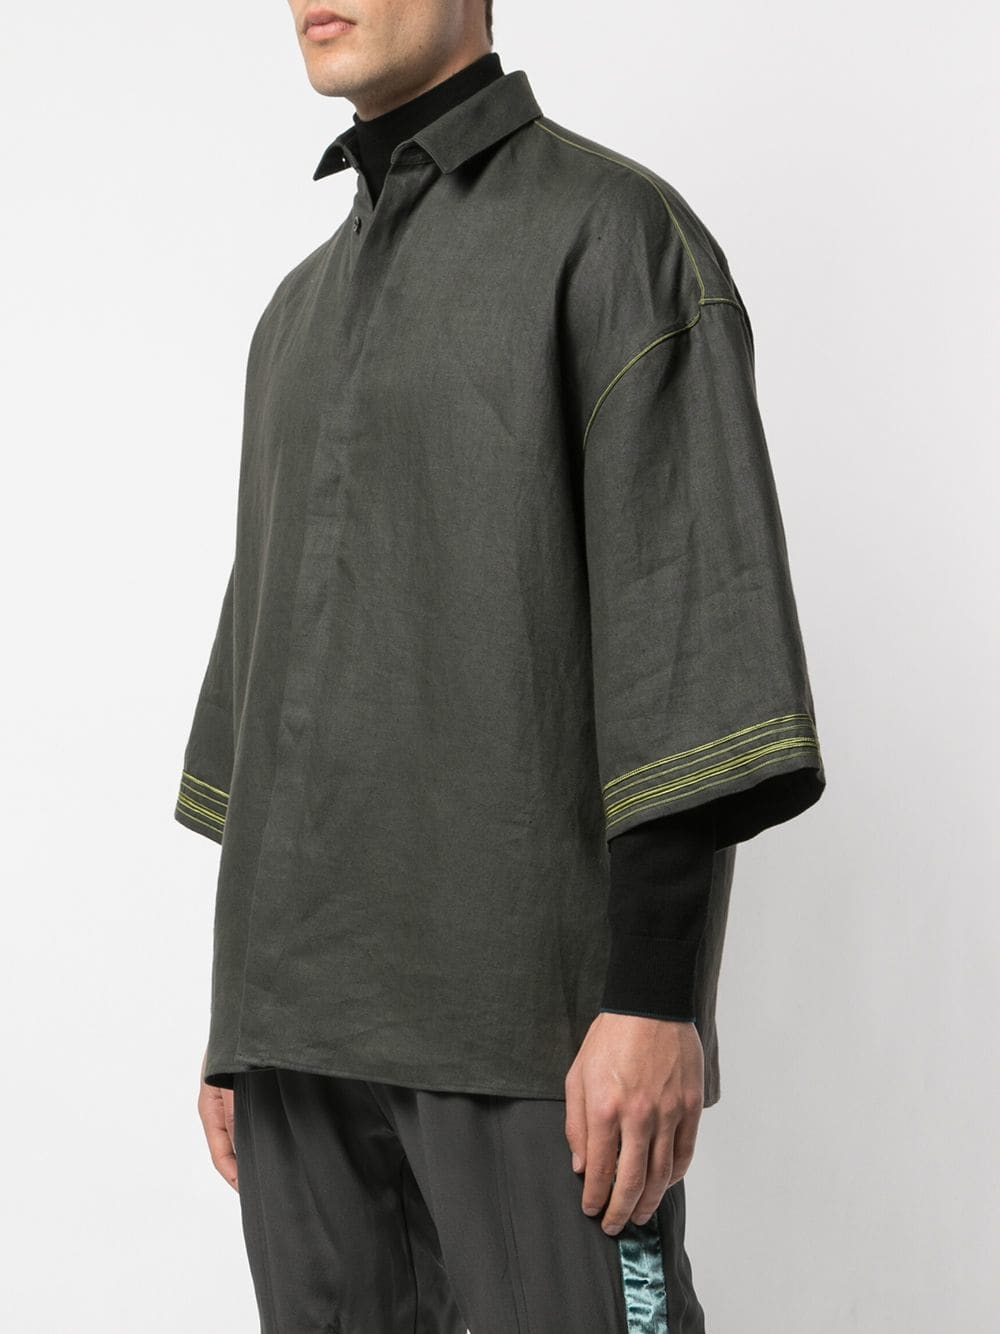 HAIDER ACKERMANN MEN 3 QUARTER SLEEVES SHIRT